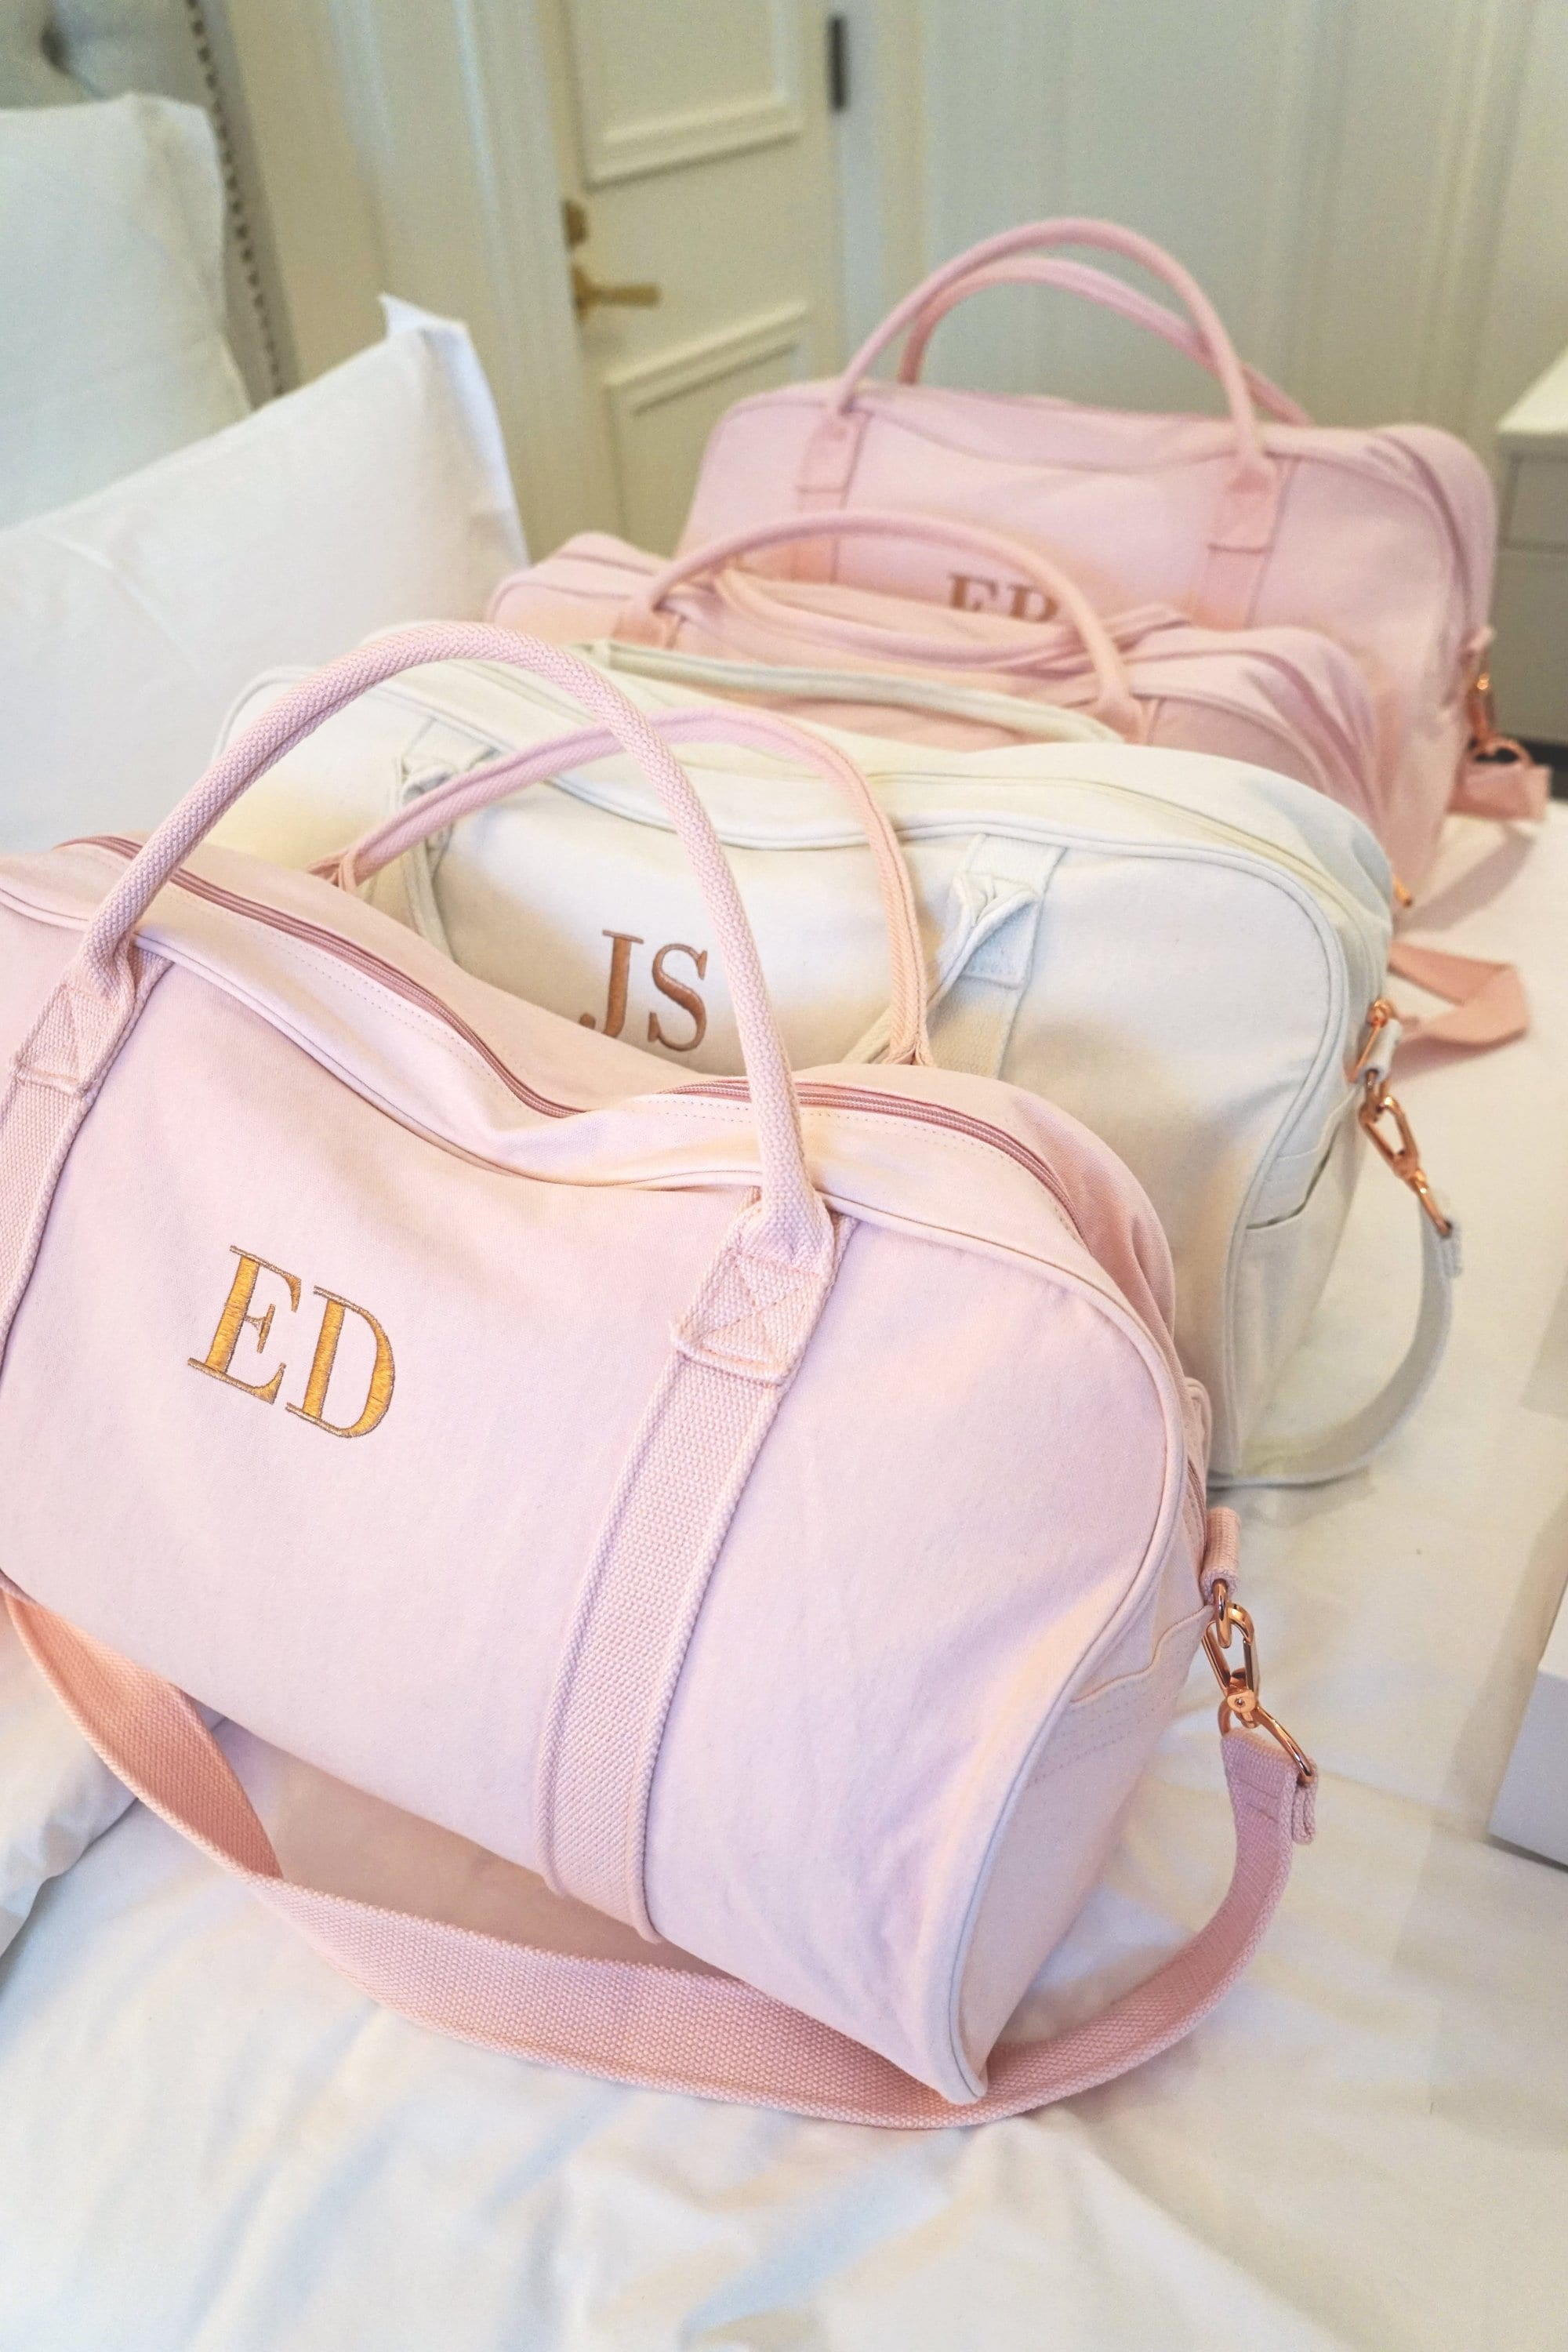 Personalised Bag //Duffle Bag //Bridesmaid Gifts //Monogrammed Soft Pink